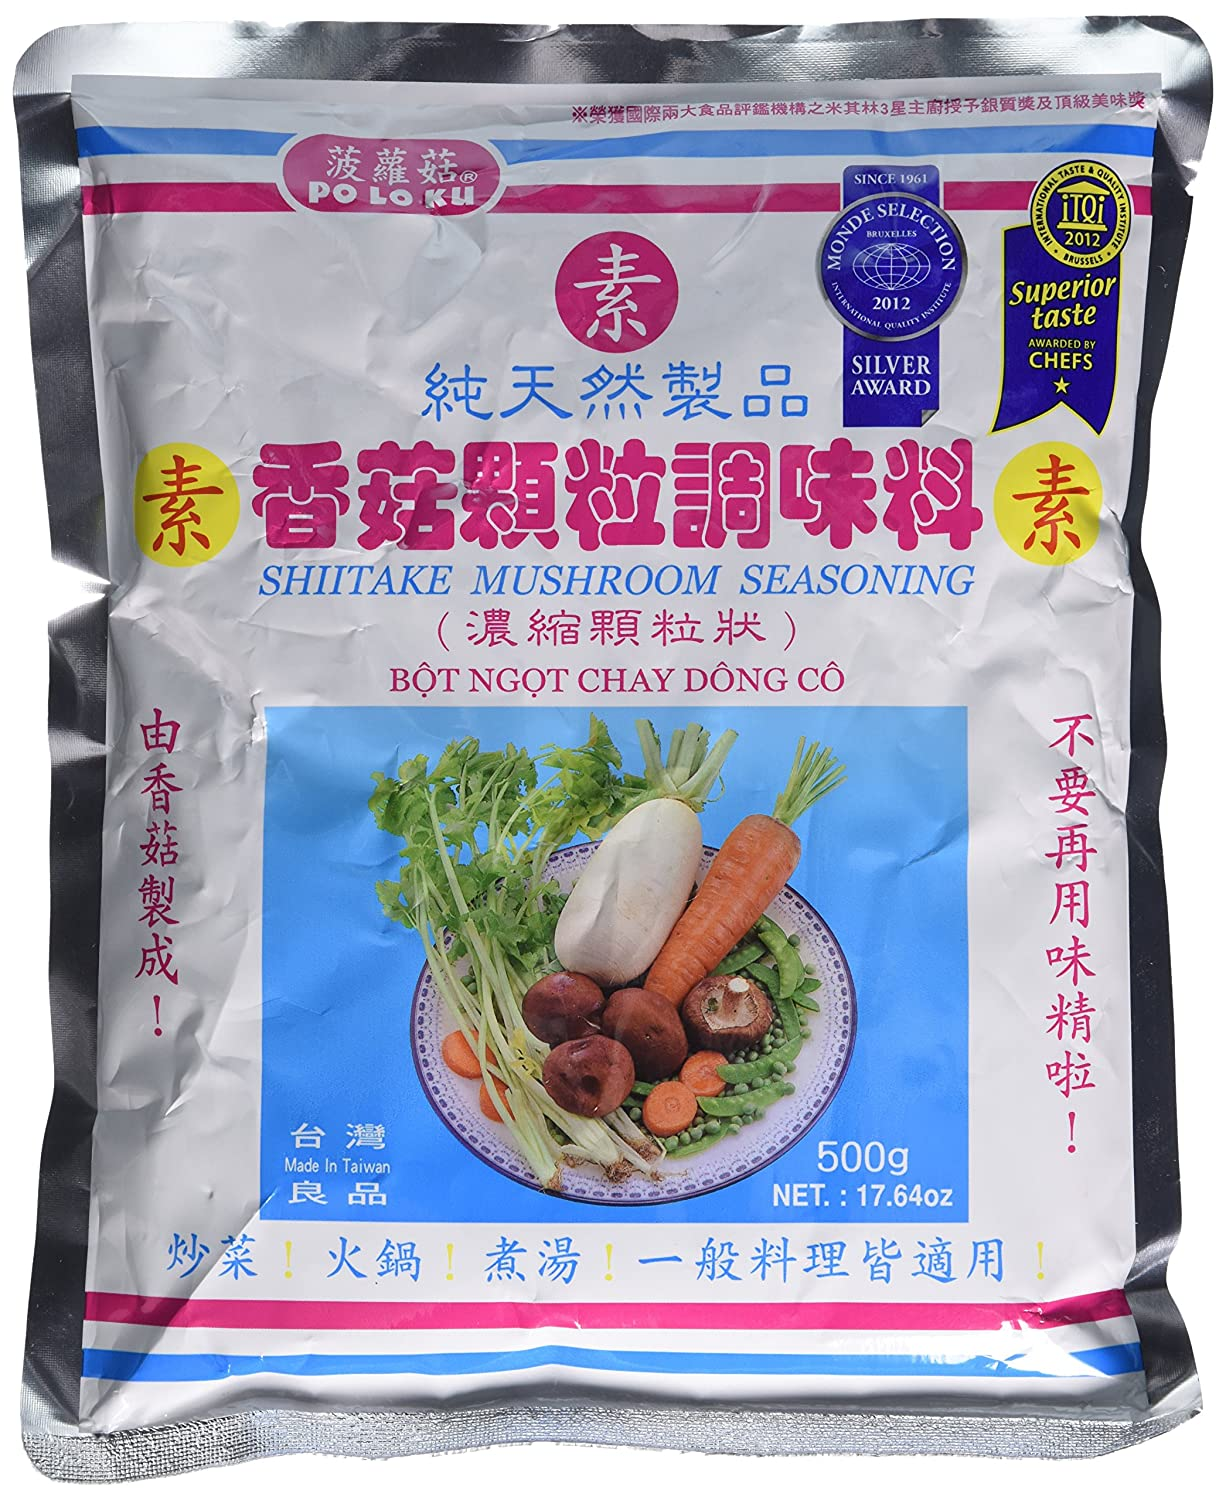 Amazon.com : Po Lo Ku Mushroom Seasoning - 17.64 Oz. (500g) : Meat  Seasonings : Grocery & Gourmet Food